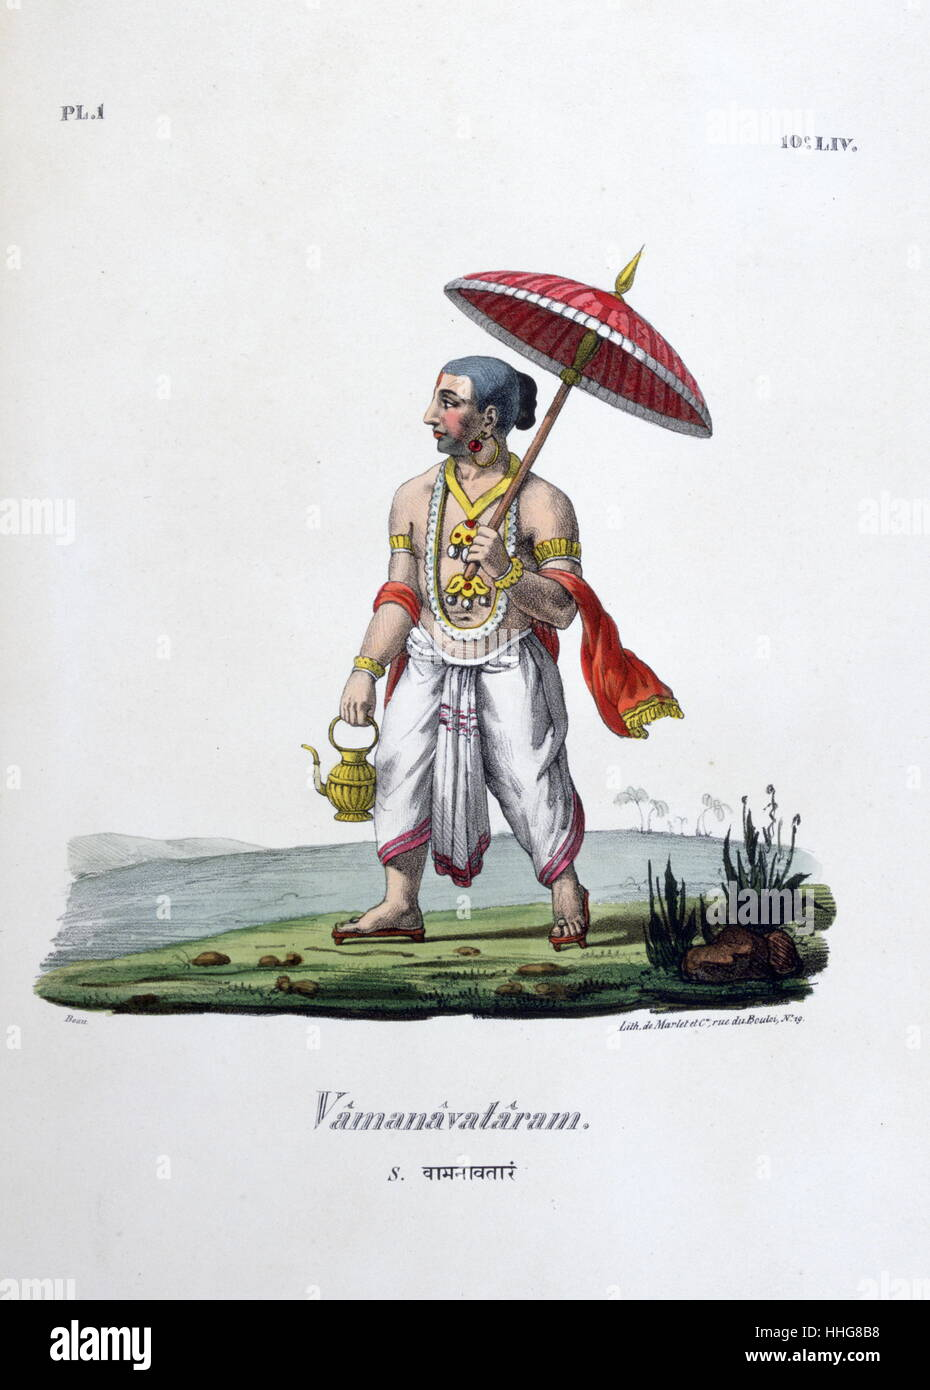 Hindu myth of Dasavataram or Vamanavataram in the form of a dwarf. Lord Vishnu as appeared as Vamanavataram - Stock Image